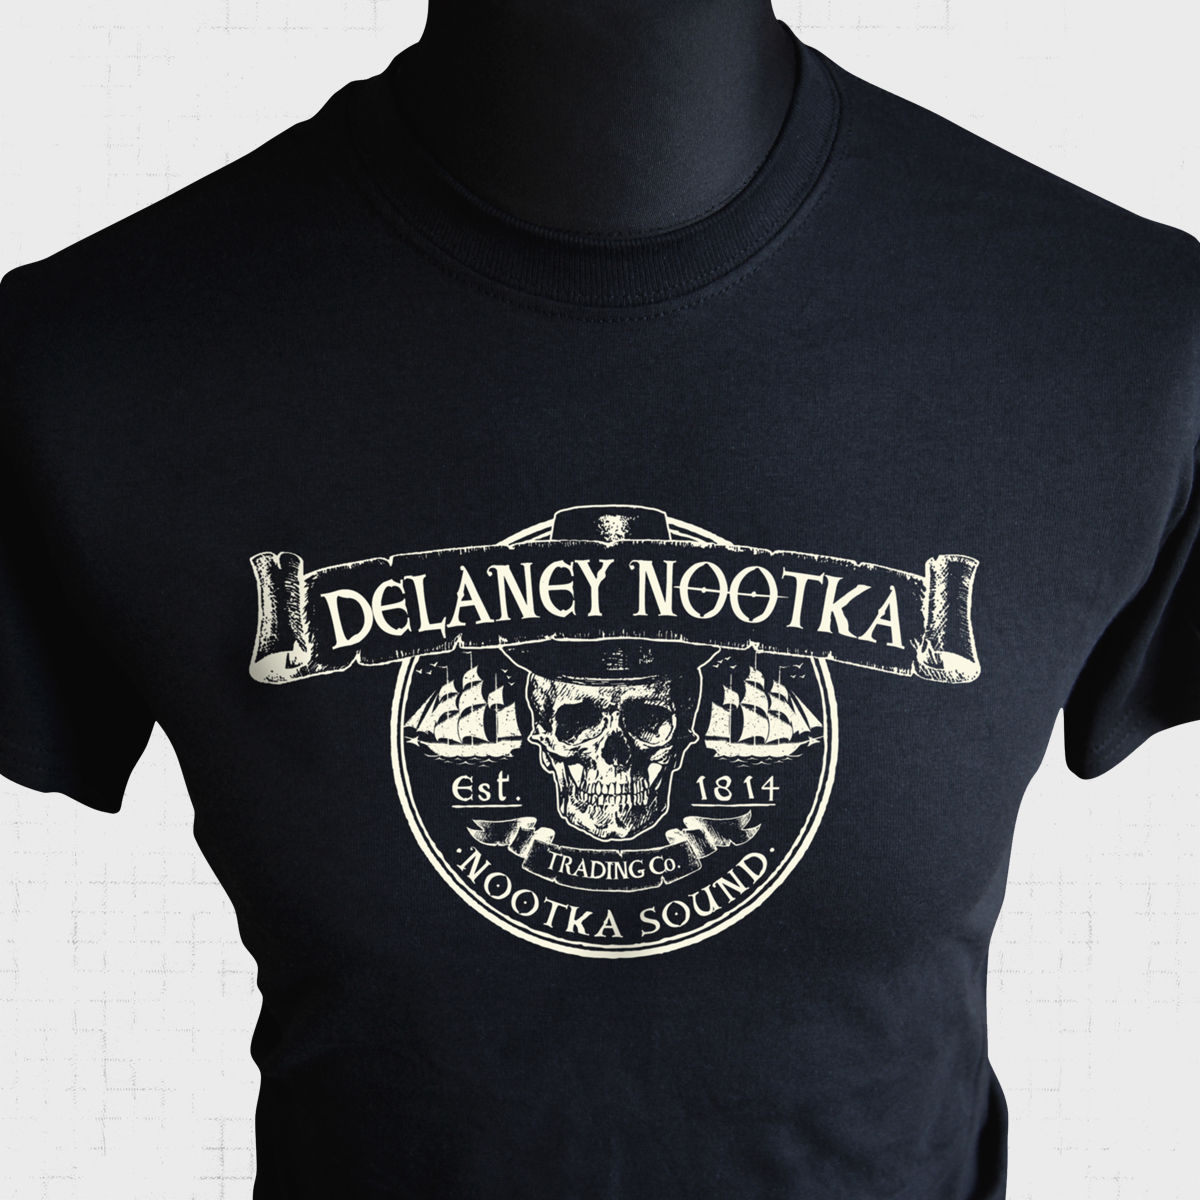 Back To Search Resultsmen's Clothing Learned Delaney Nootka Trading Co T Shirt Inspired By Taboo Tom Hardy Cool Tv Series Tee New T Shirts Funny Tshirts Tee New Unisex Funny Easy To Repair